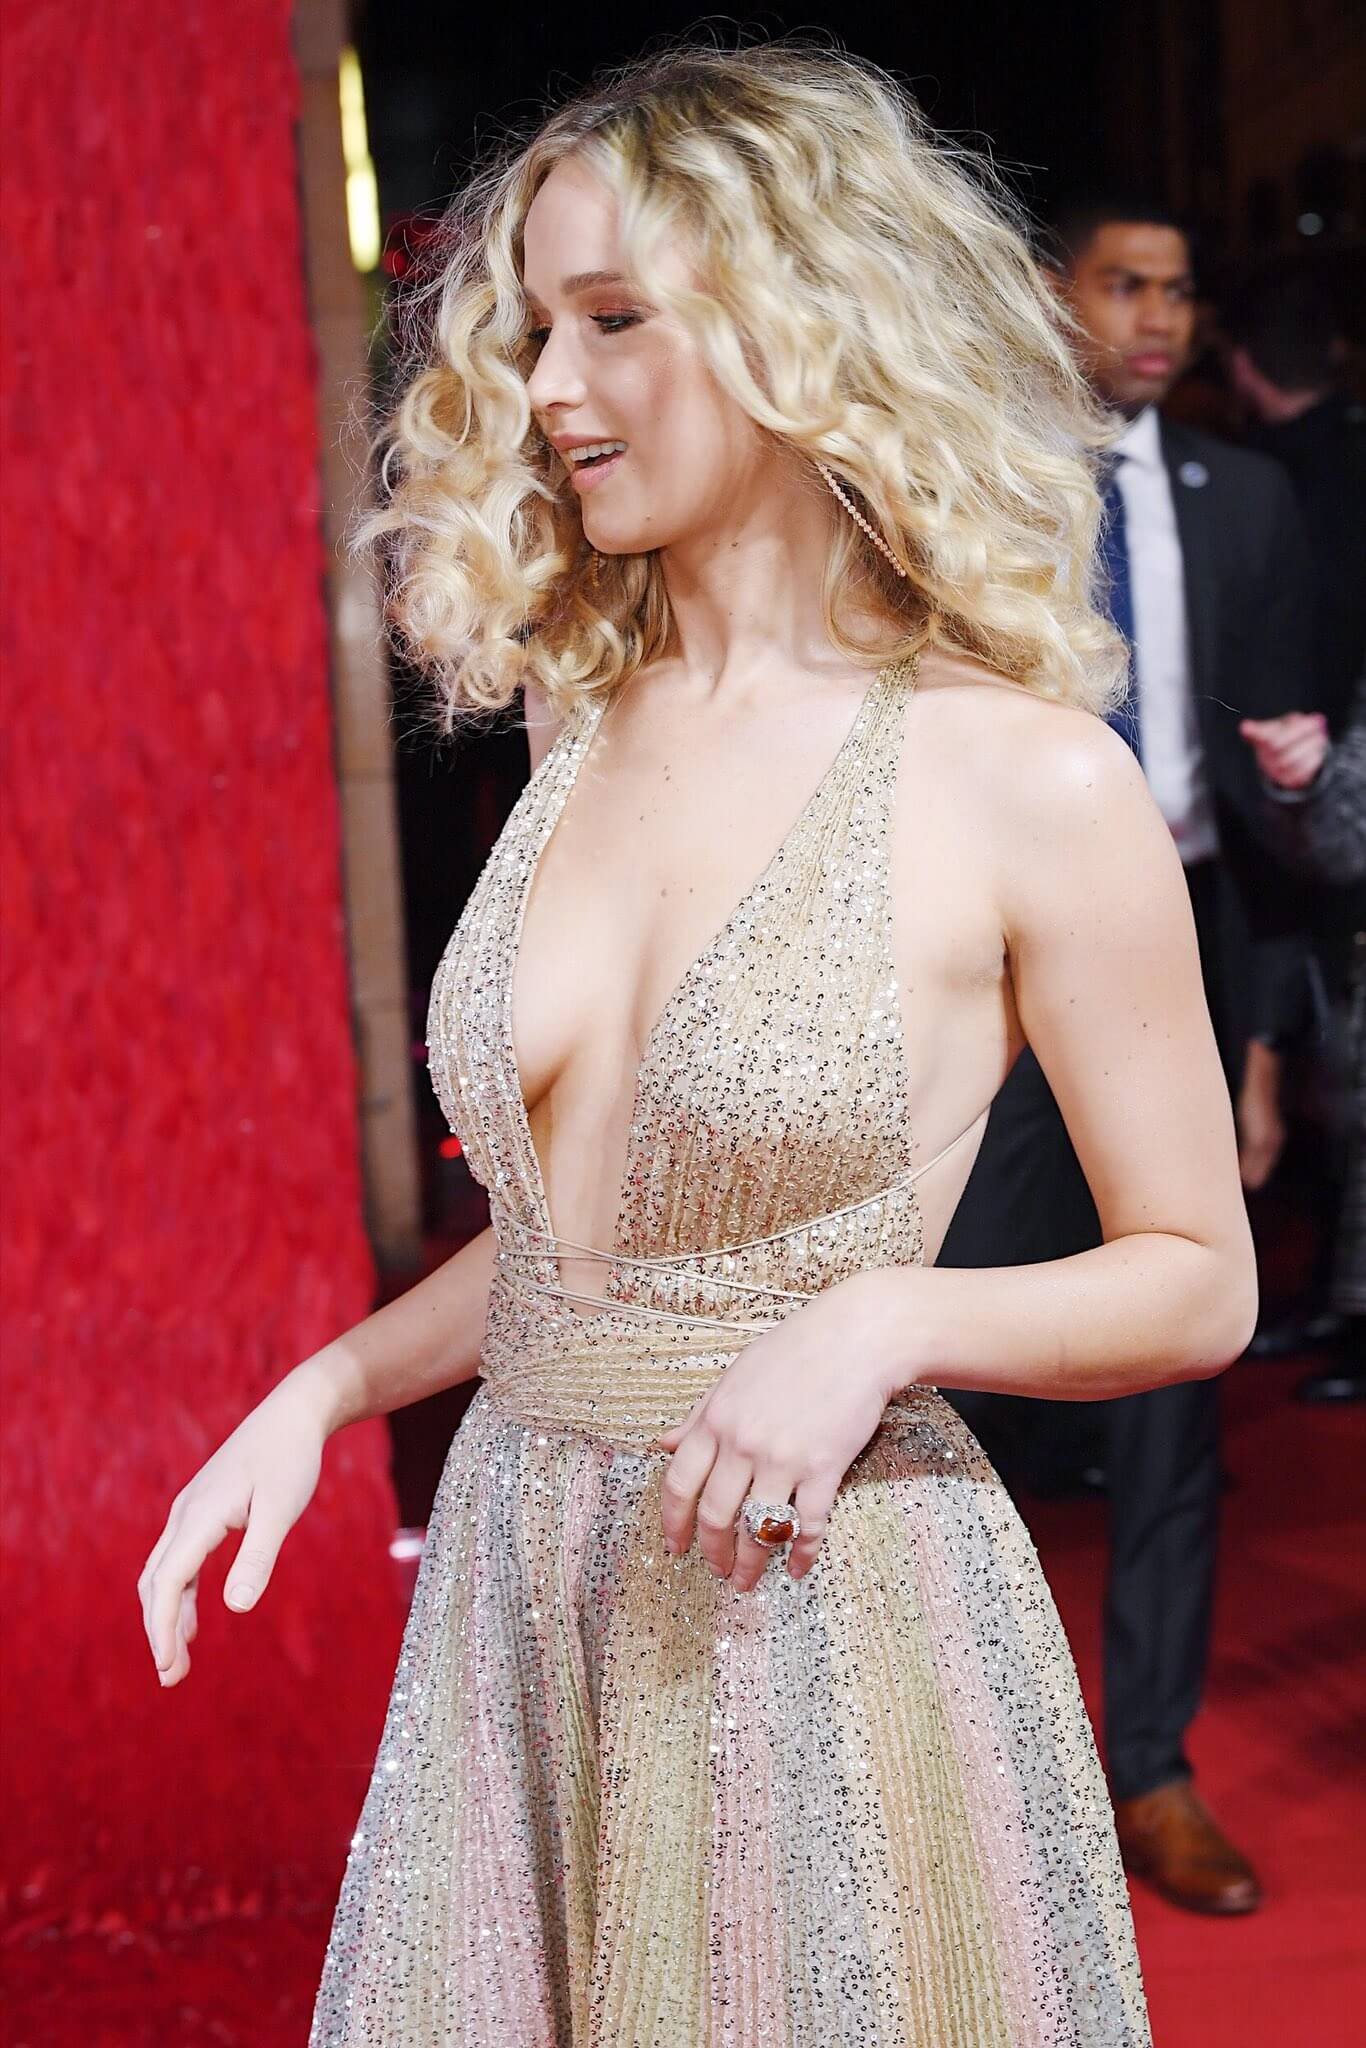 49 Sexy Pictures Of Jennifer Lawrence Will Drive You Nuts